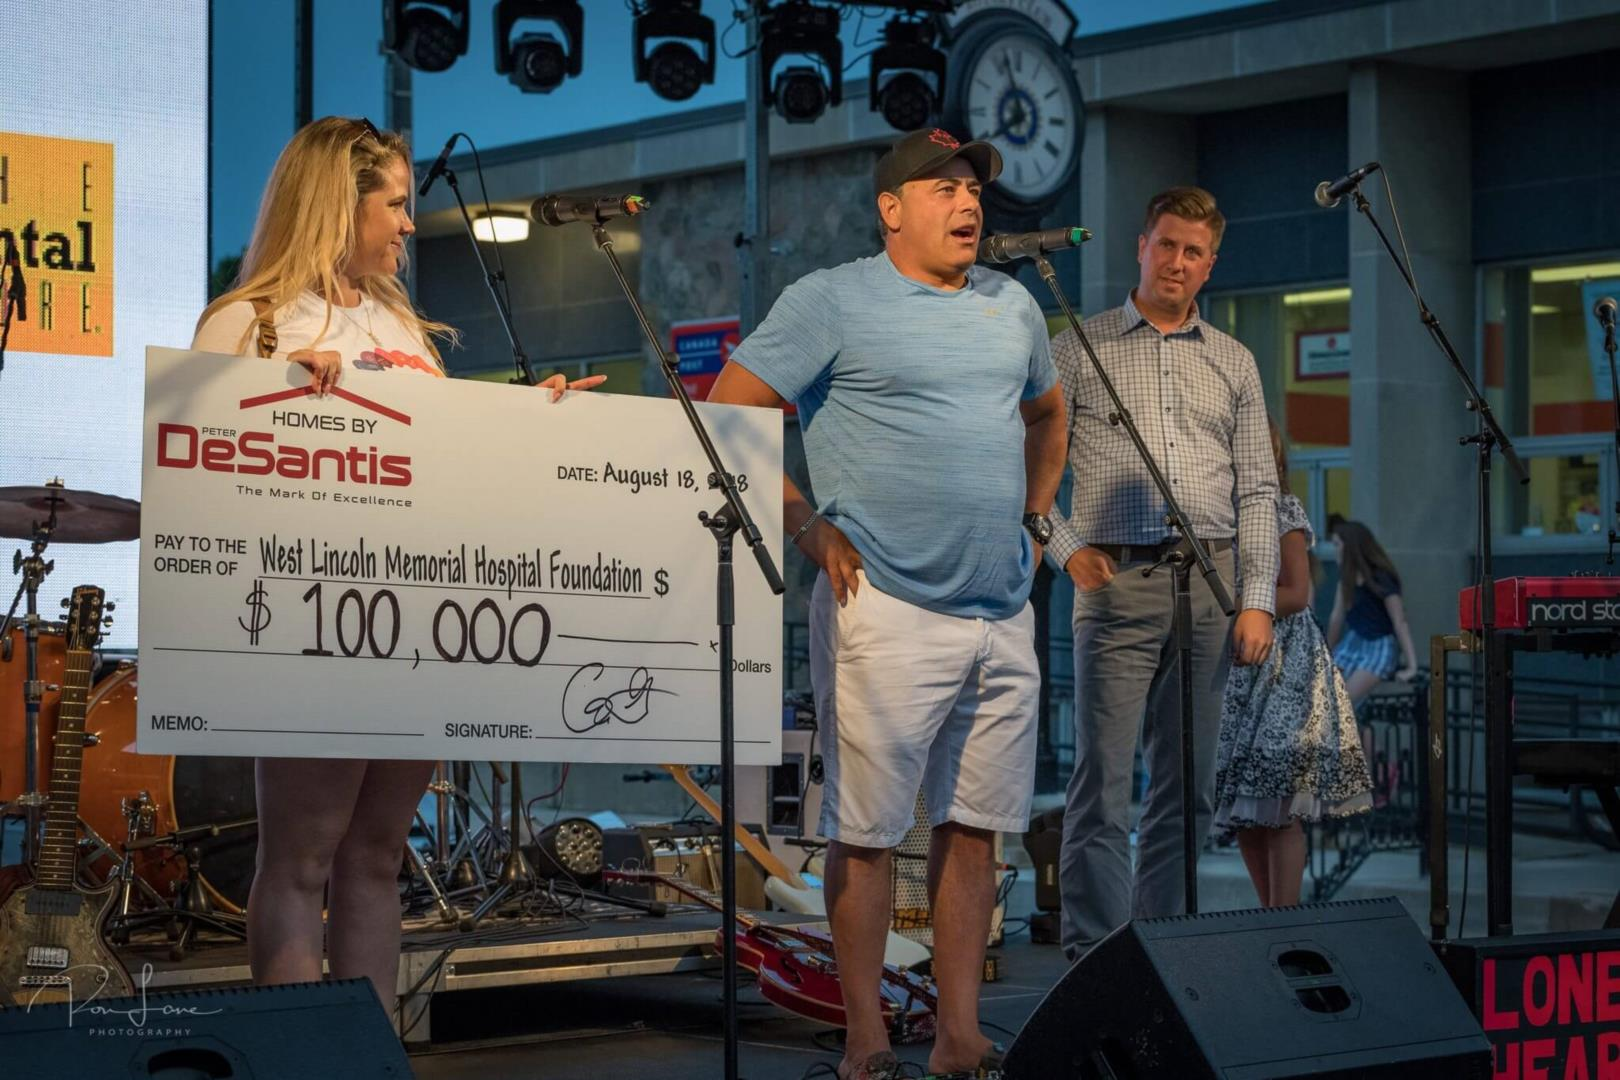 Homes By DeSantis raises $100,000 for the West Lincoln Memorial Hospital Foundation Image